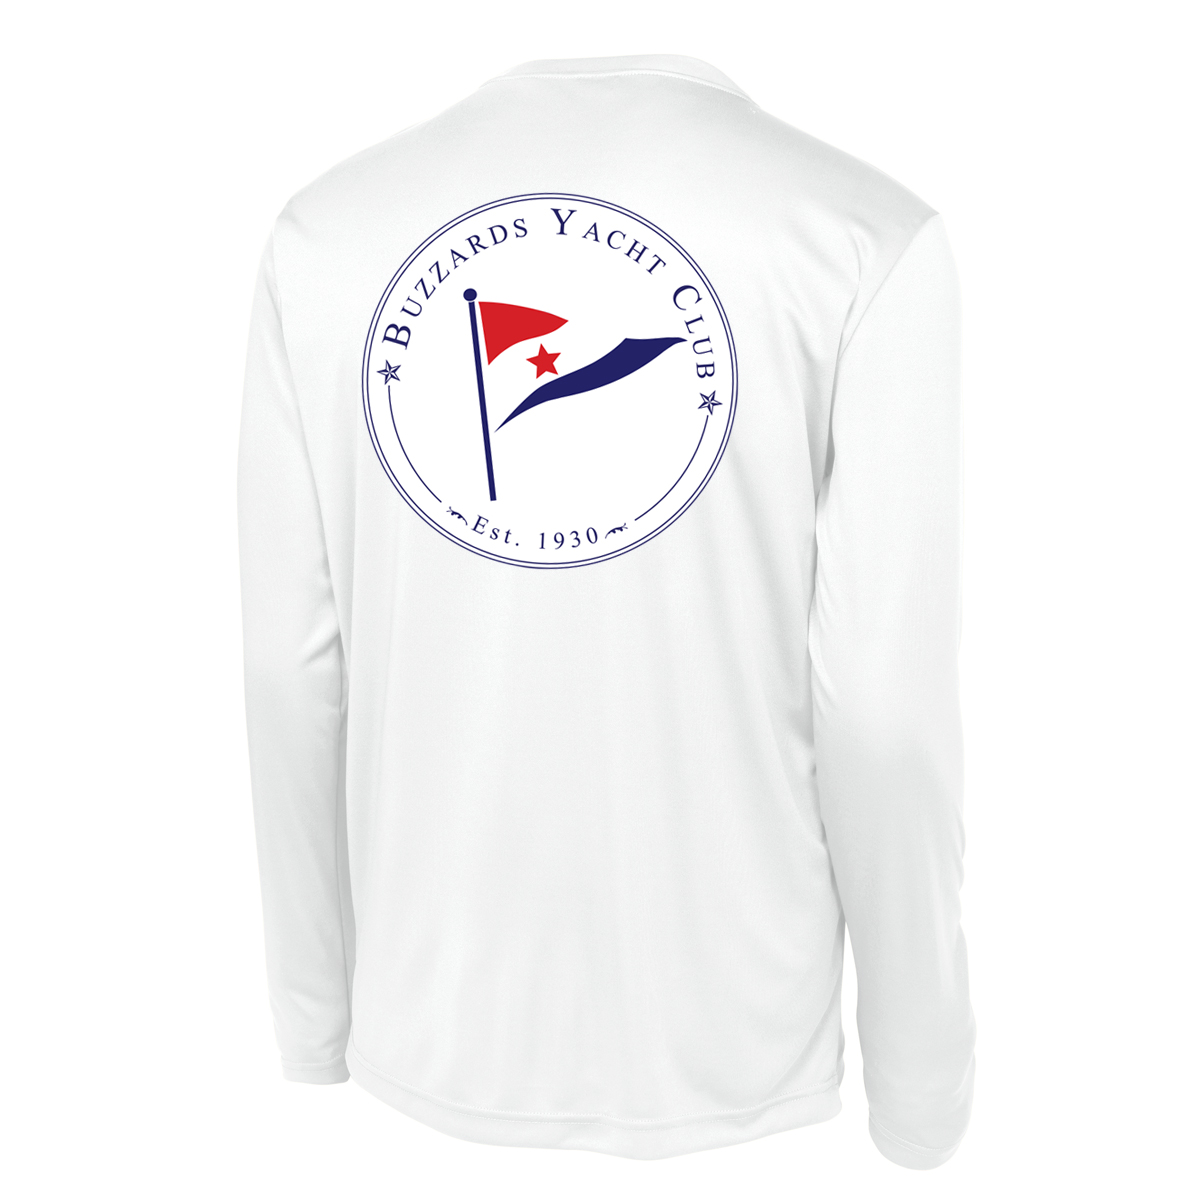 Buzzards Yacht Club - Men's Long Sleeve Tech Tee (BUZ214)